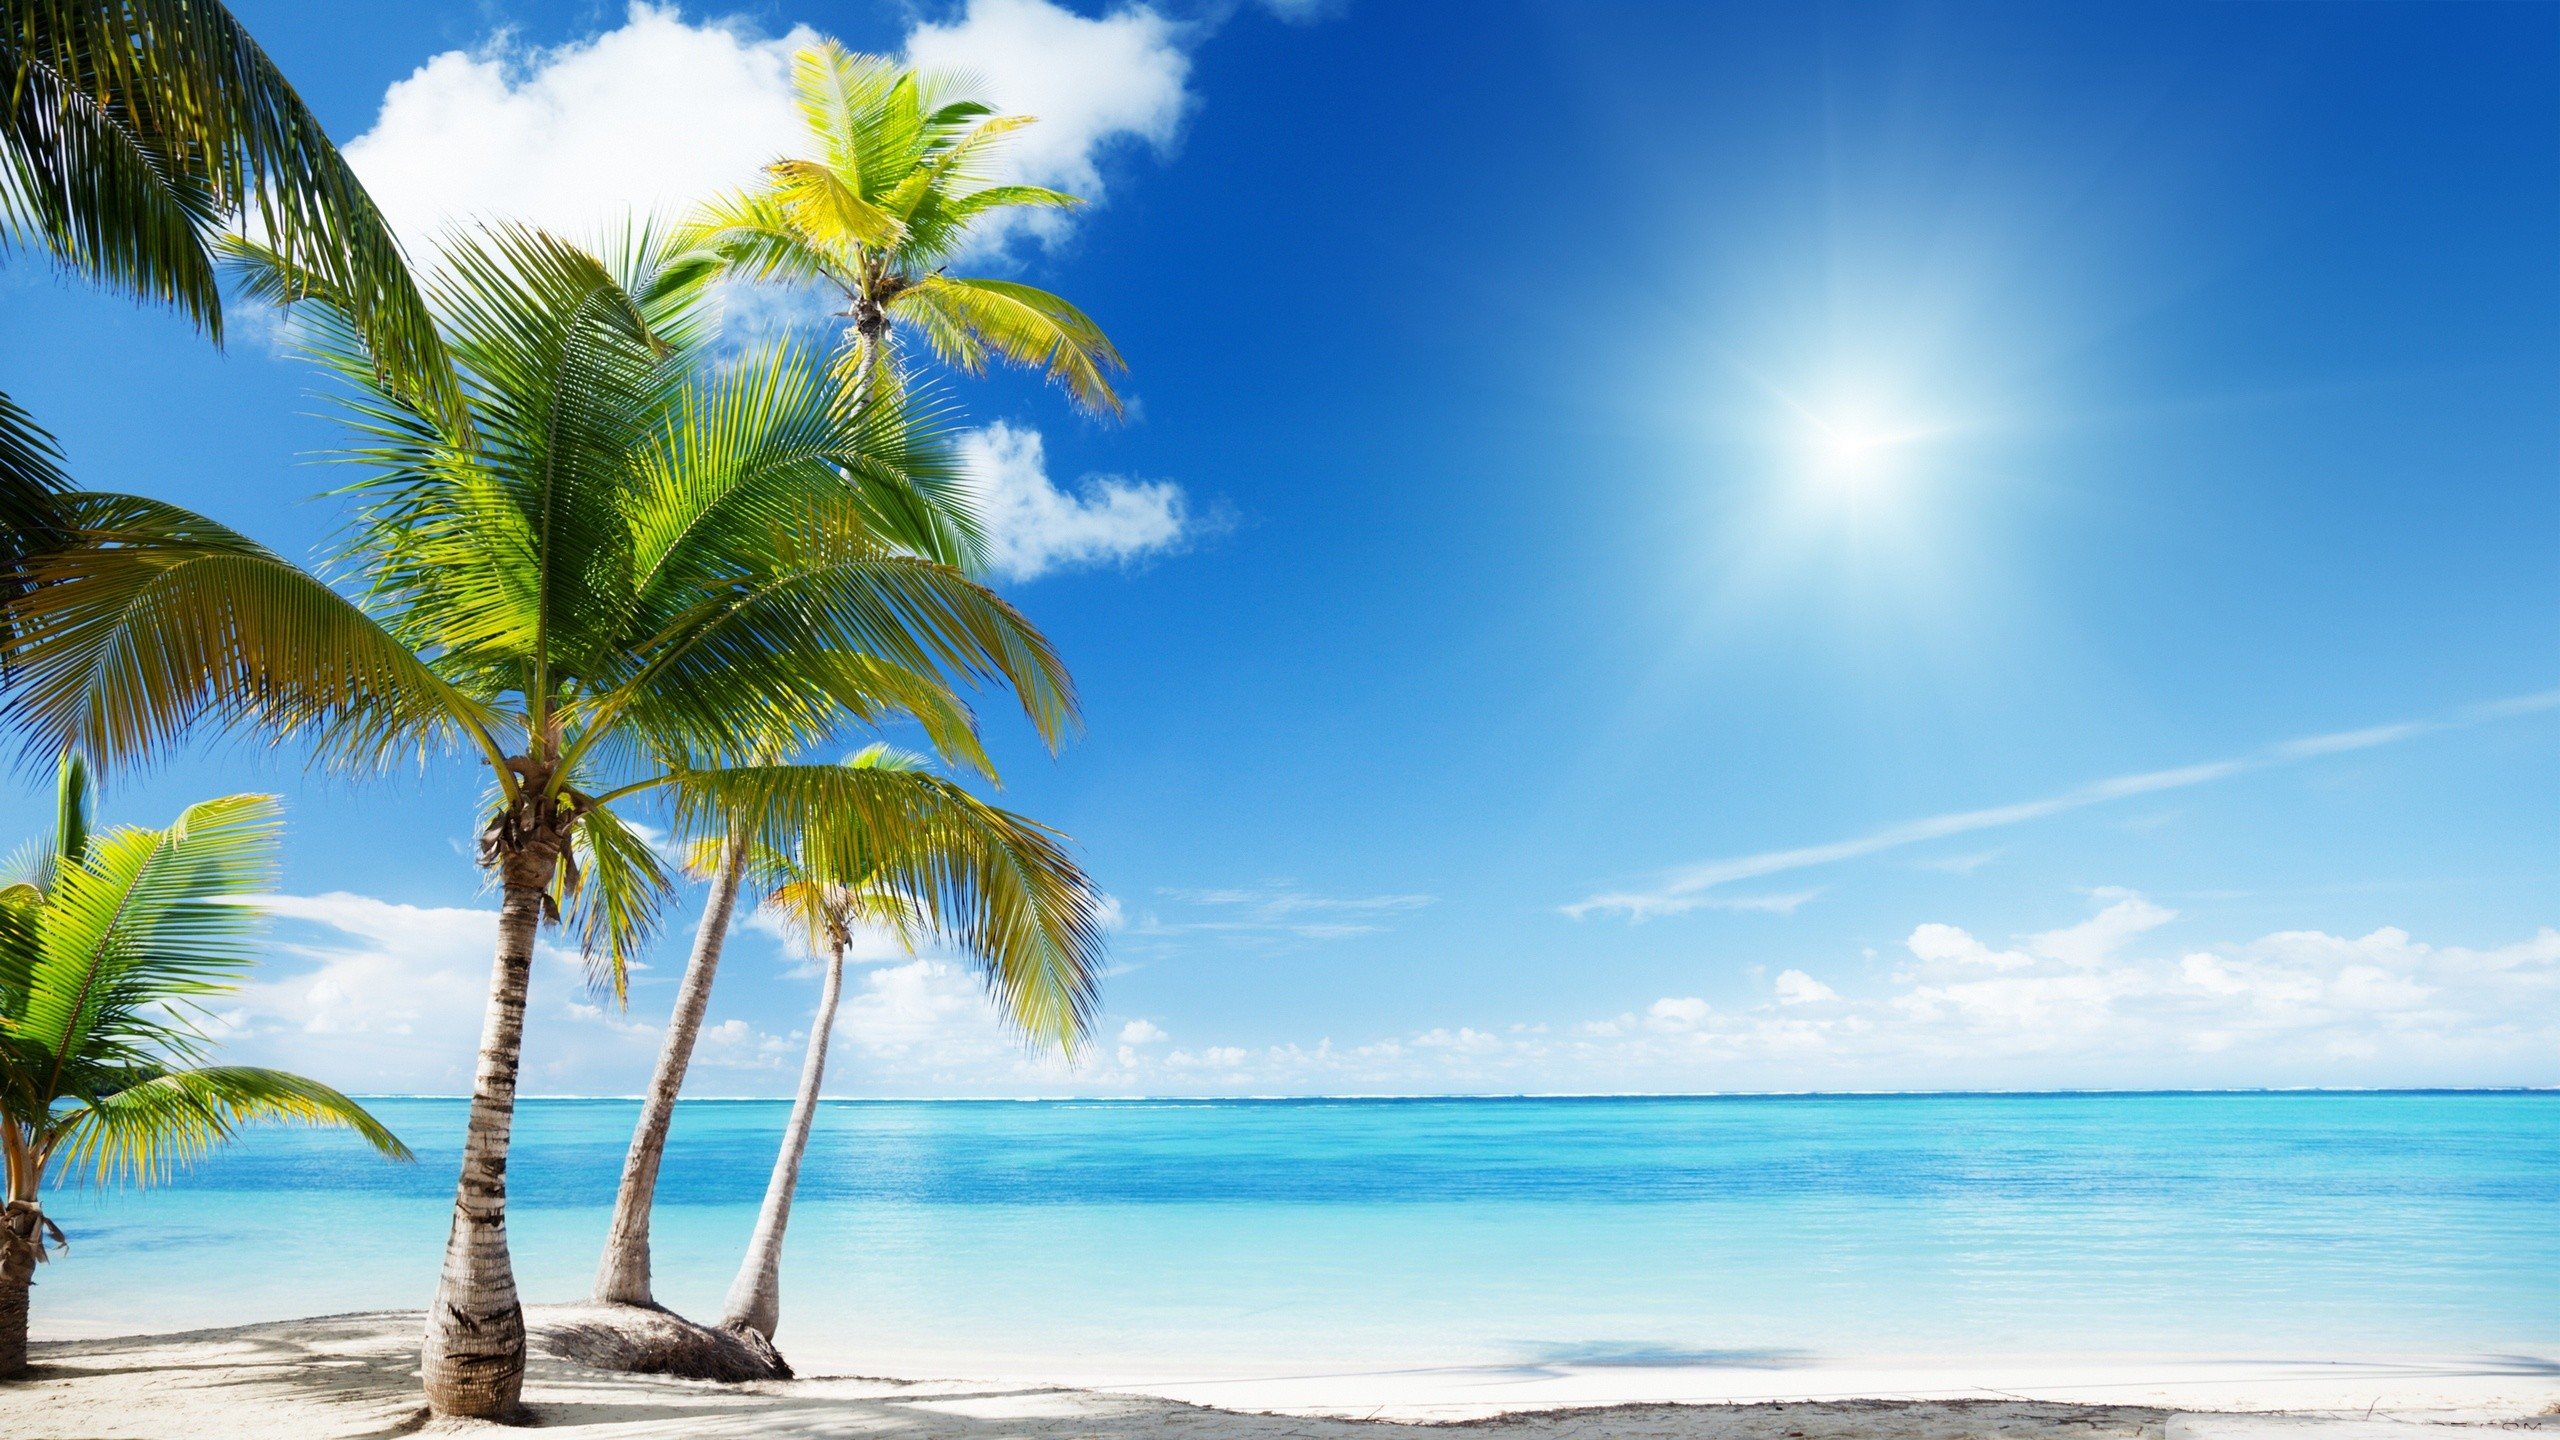 … Tropical Beach Paradise HD desktop wallpaper Widescreen High .